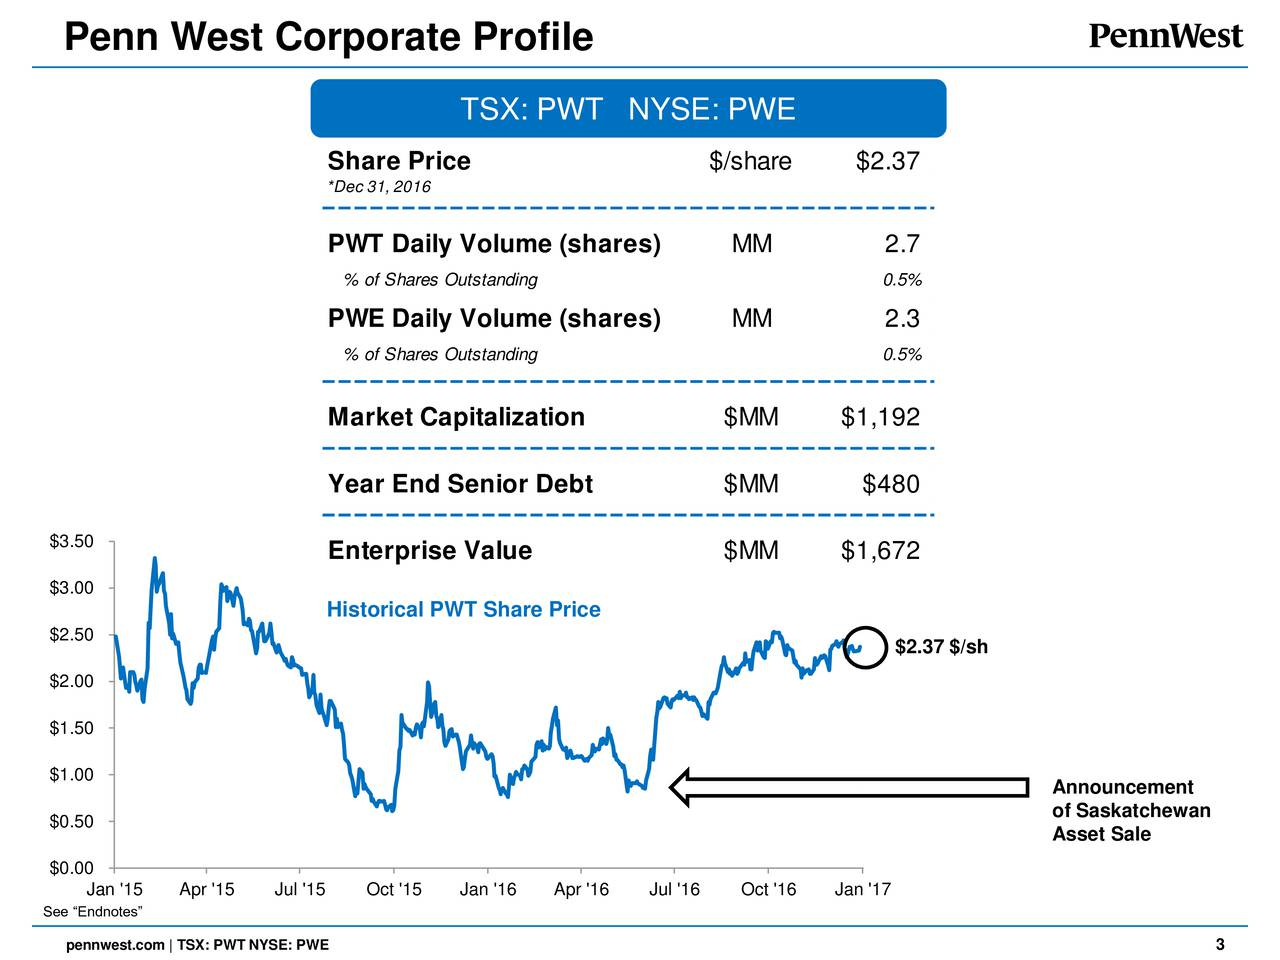 TSX: PWT NYSE: PWE Share Price $/share $2.37 *Dec 31, 2016 PWT Daily Volume (shares) MM 2.7 % of Shares Outstanding 0.5% PWE Daily Volume (shares) MM 2.3 % of Shares Outstanding 0.5% Market Capitalization $MM $1,192 Year End Senior Debt $MM $480 $3.50 Enterprise Value $MM $1,672 $3.00 Historical PWT Share Price $2.50 $2.37 $/sh $2.00 $1.50 $1.00 Announcement $0.50 of Saskatchewan Asset Sale $0.00 Jan '15 Apr '15 Jul '15 Oct '15 Jan '16 Apr '16 Jul '16 Oct '16 Jan '17 See Endnotes pennwest.com | TSX: PWT NYSE: PWE